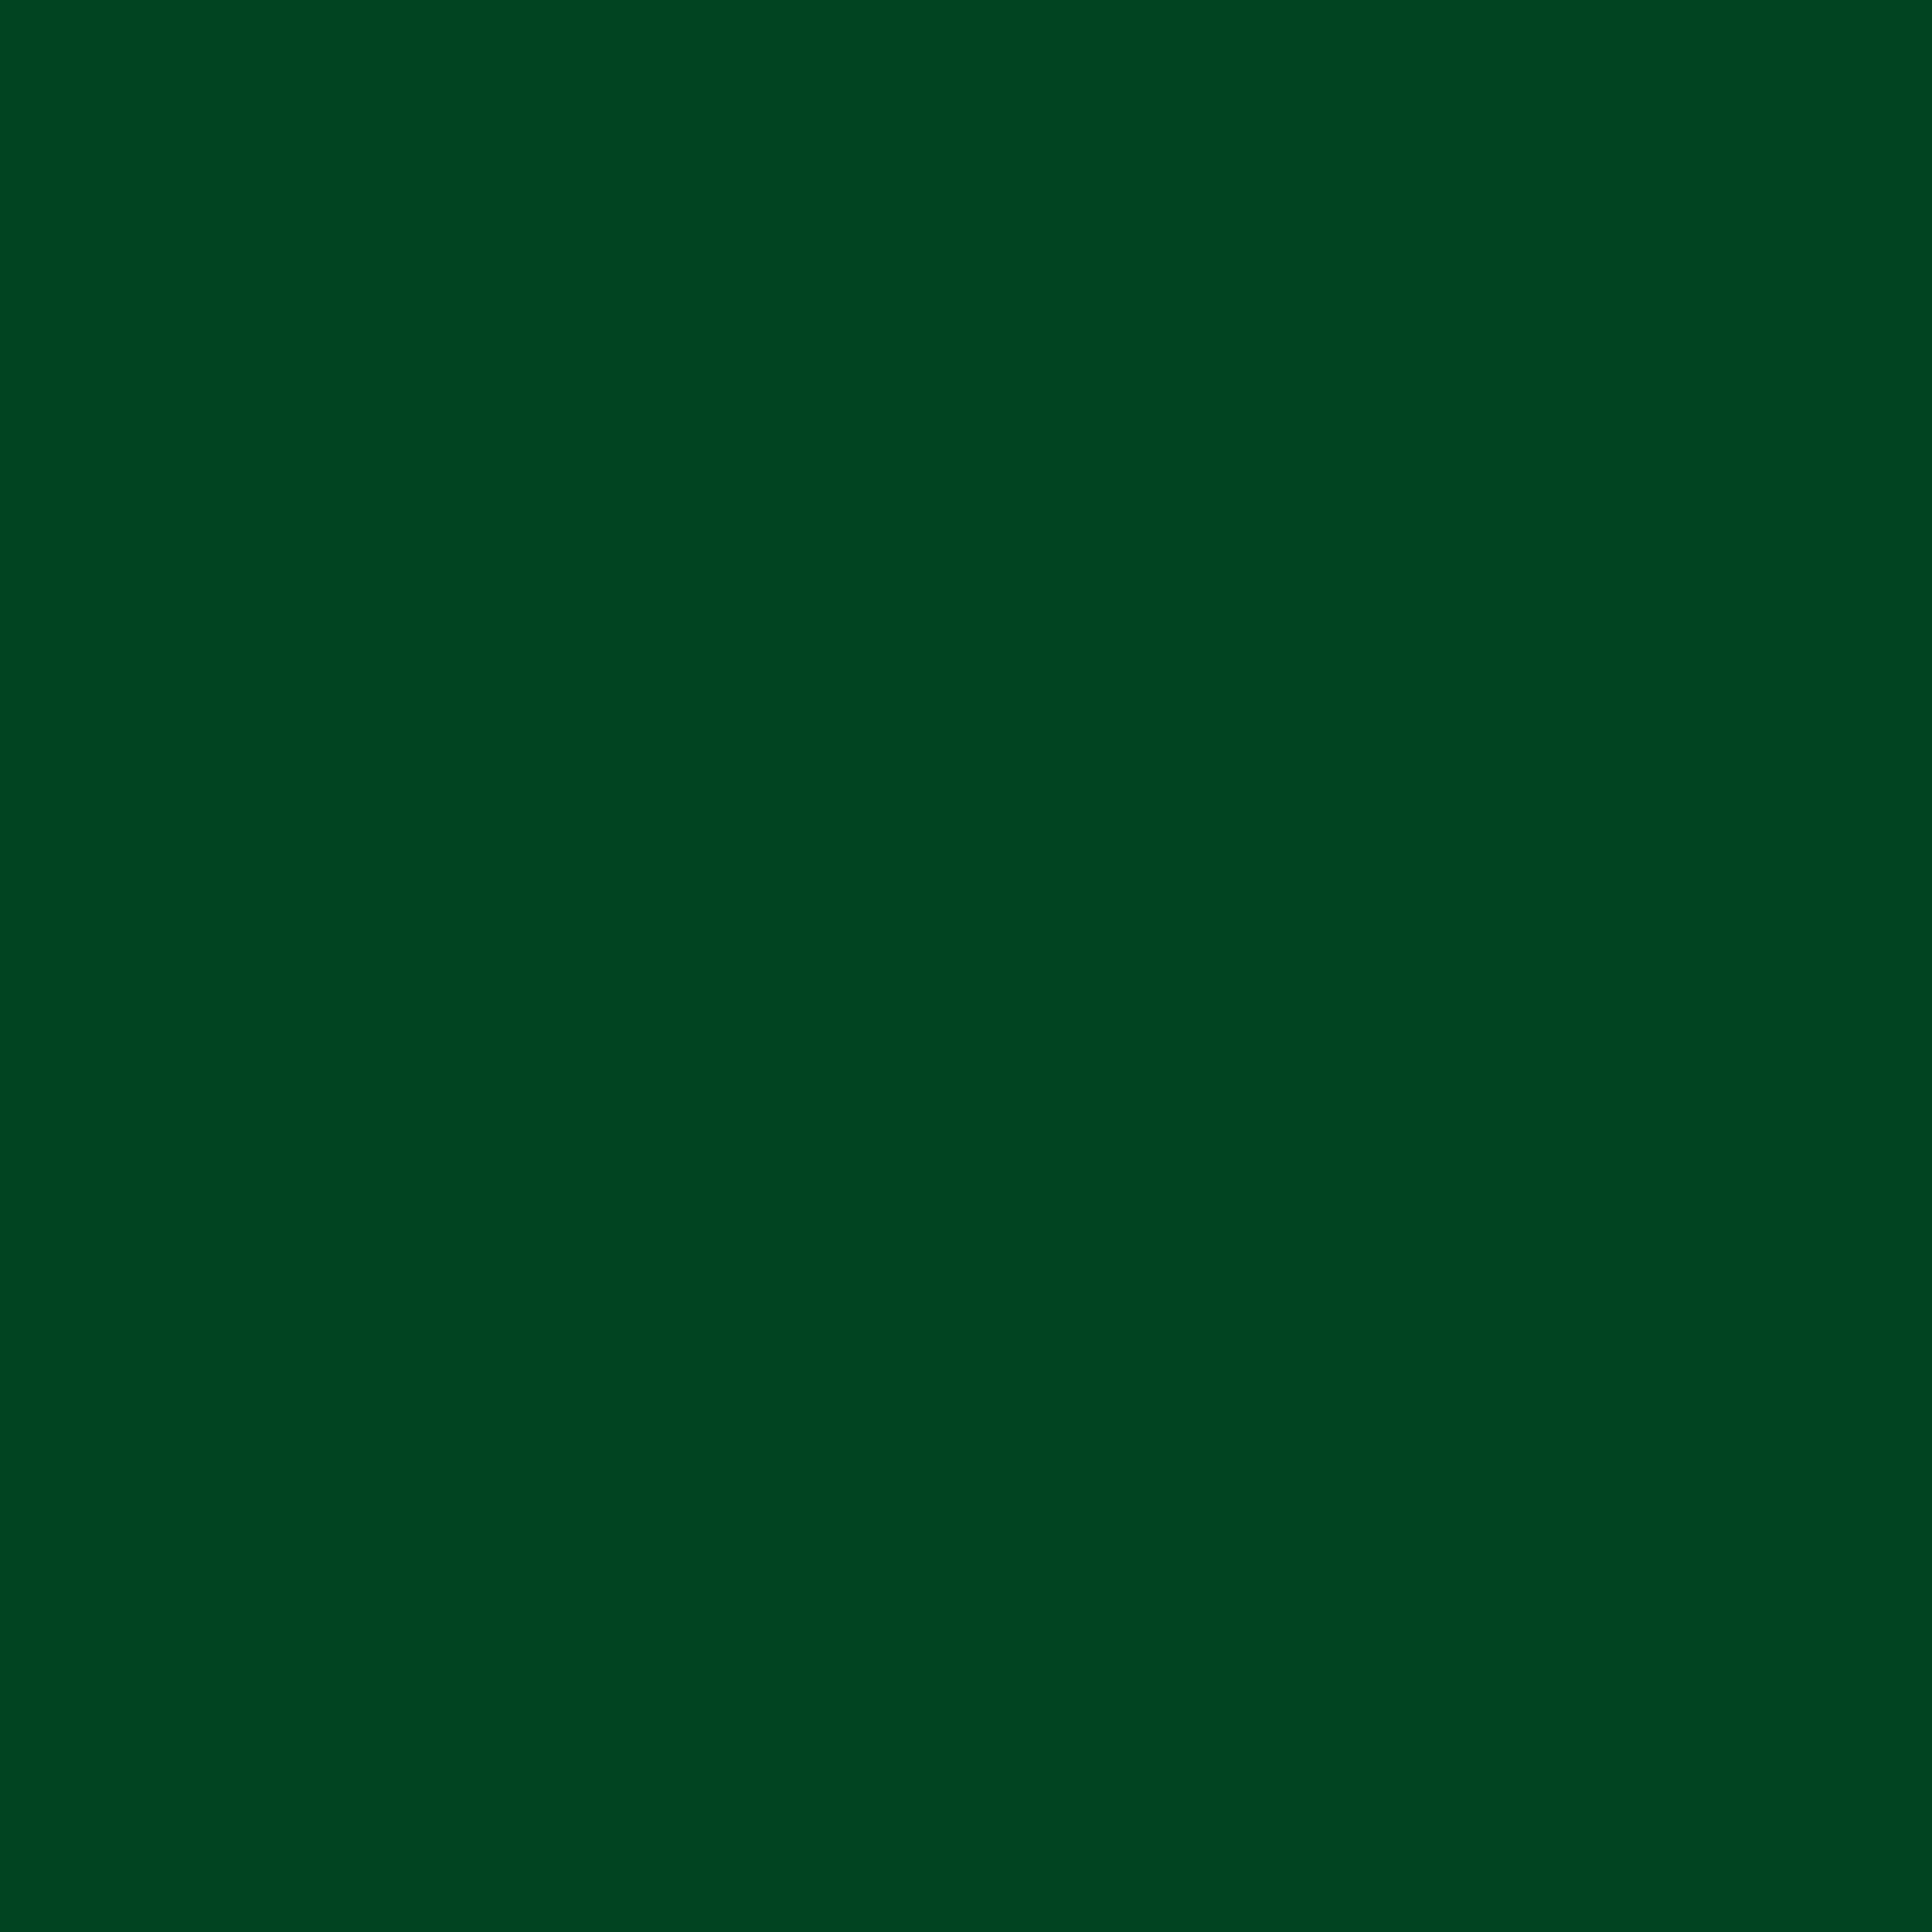 2048x2048 resolution Forest Green Traditional solid color background 2048x2048